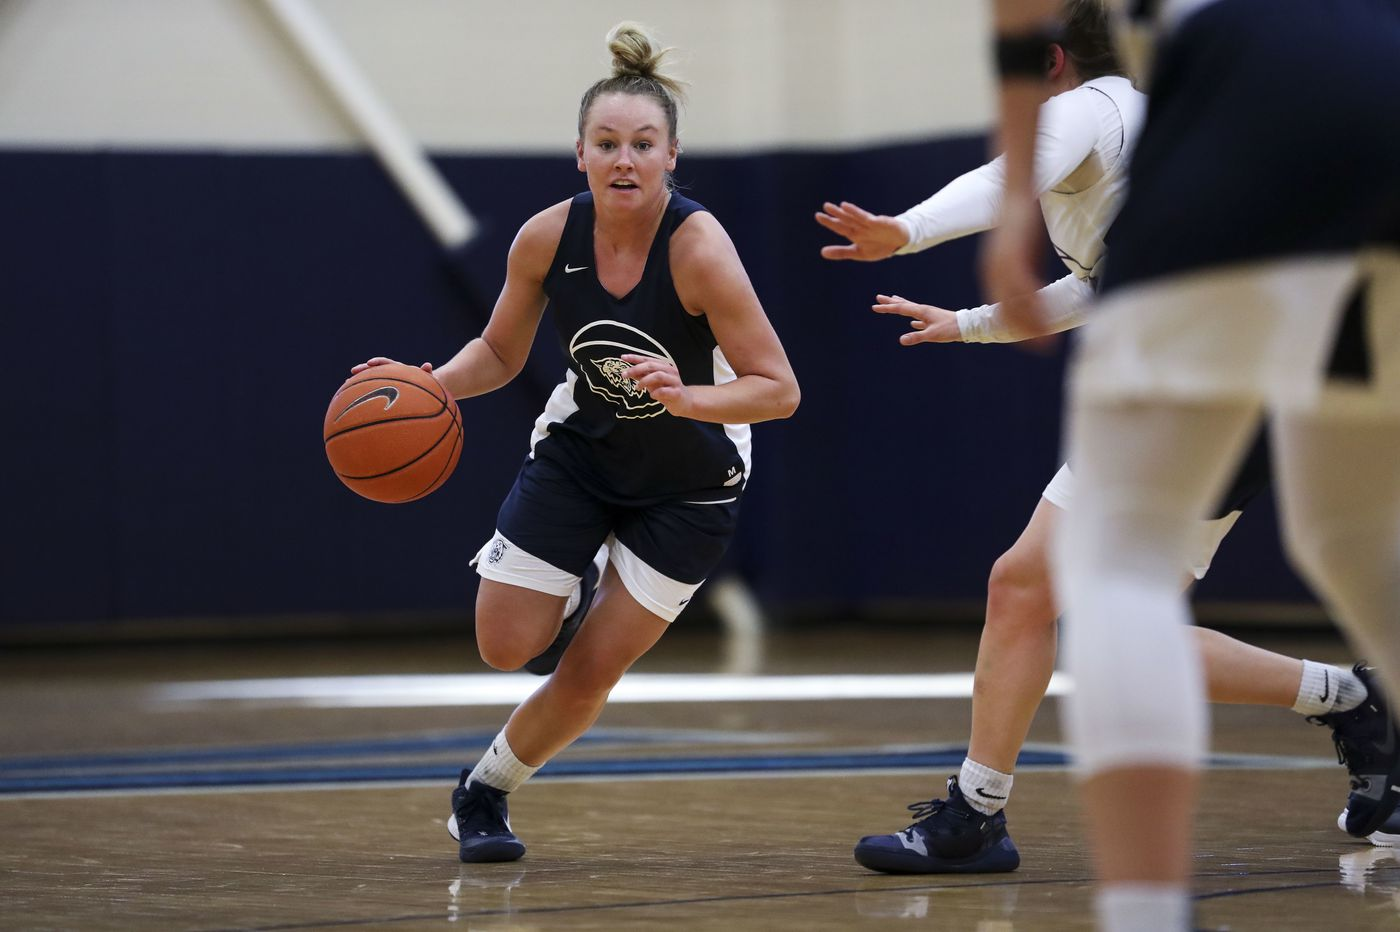 Villanova's Kenzie Gardler breaks family's St. Joseph's basketball tradition | Mike Jensen